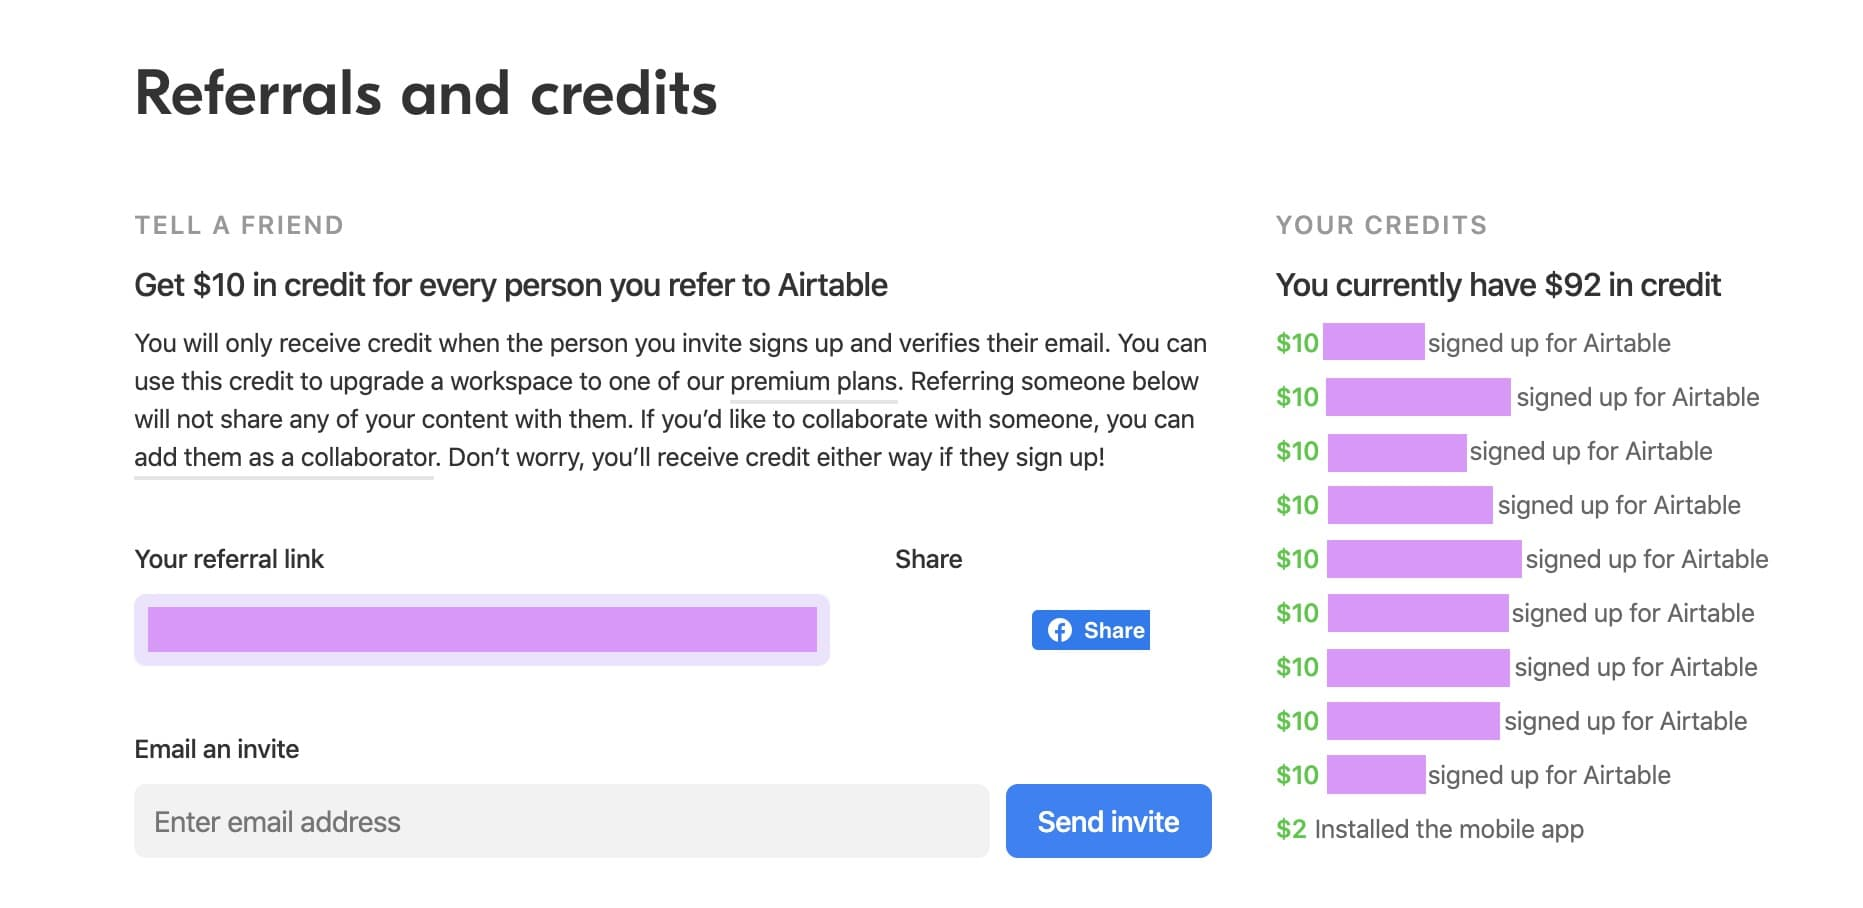 Airtable shows who you invited that earned you credits